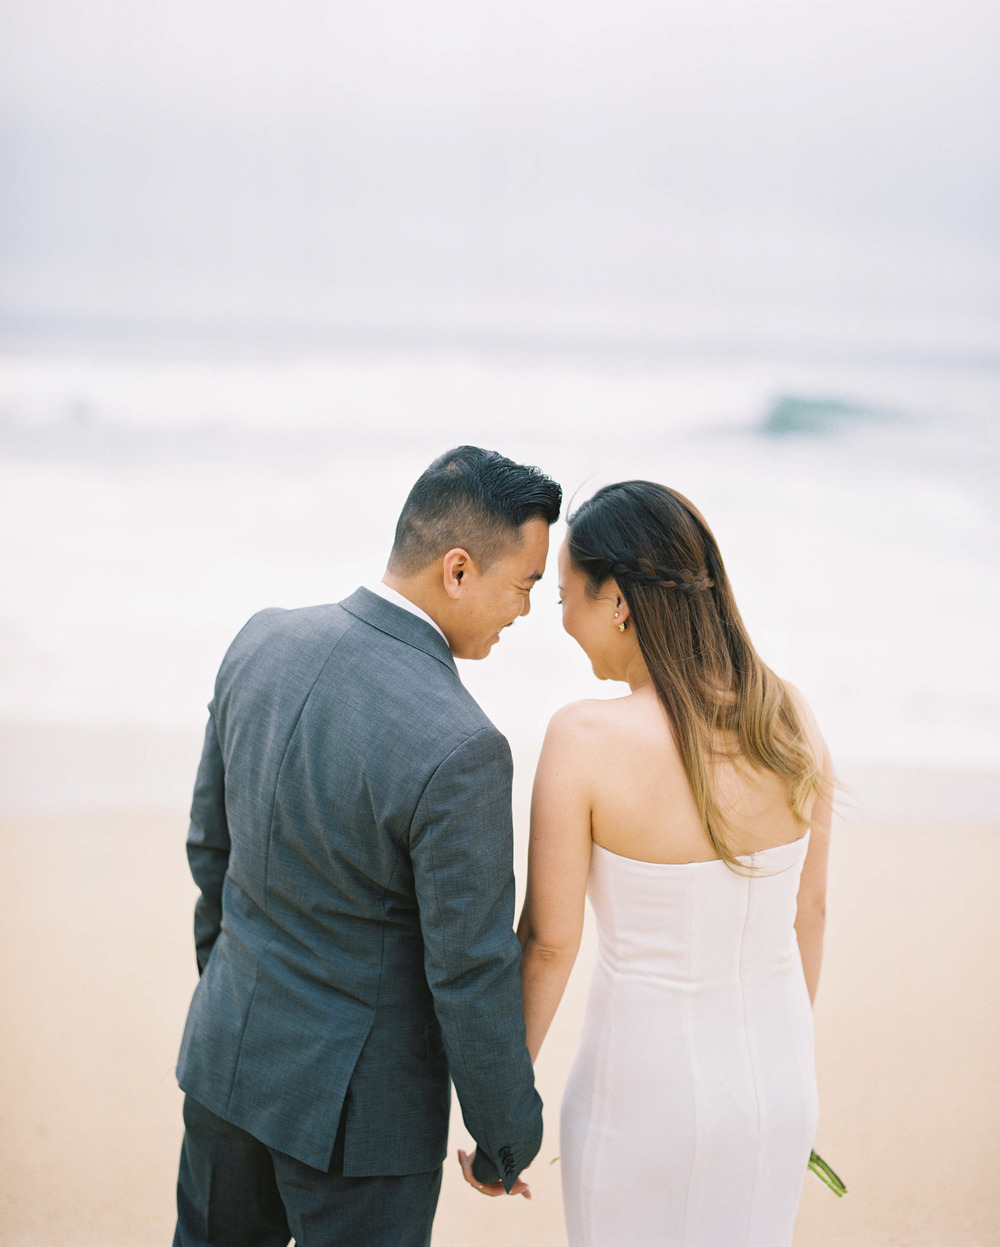 pentax 6x7 portra 400 by Jenny Soi Photography